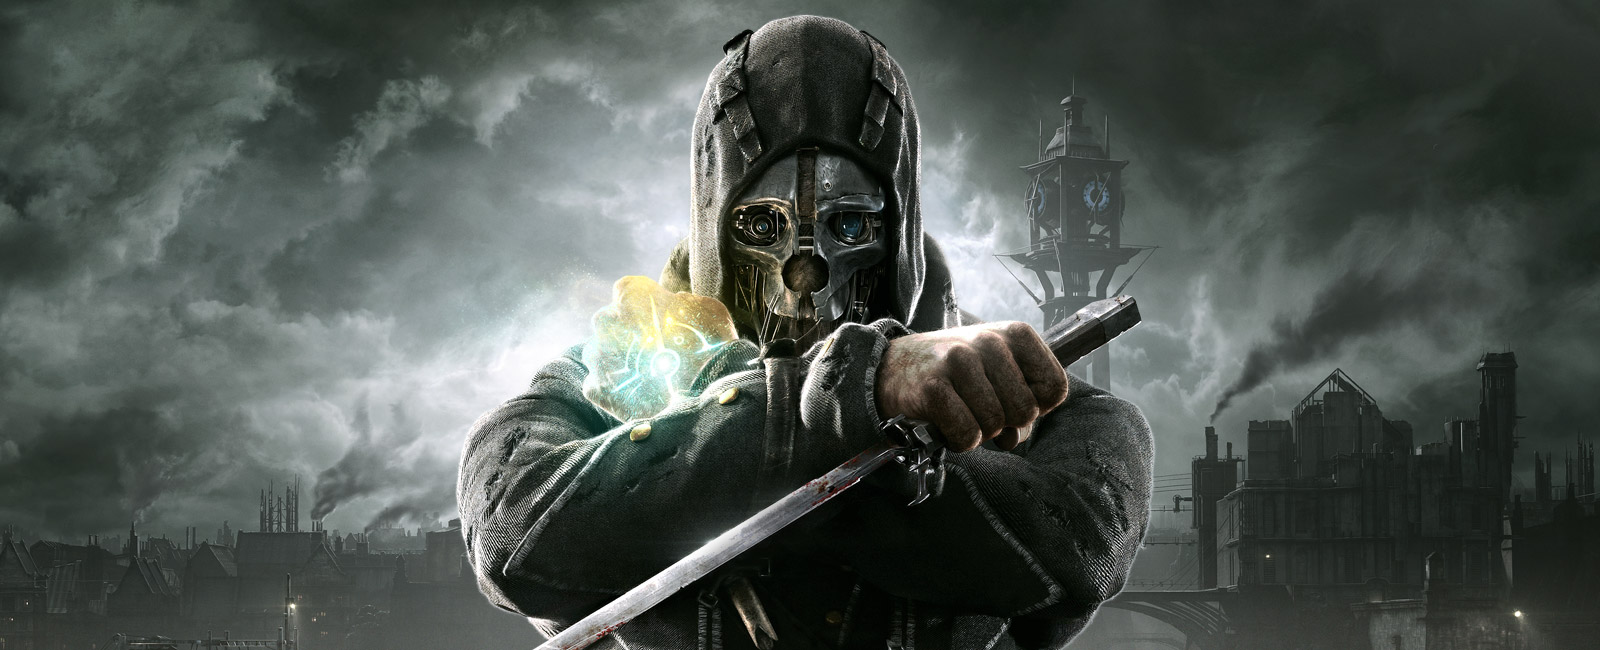 Dishonored : HD Wallpapers - I Have A PC